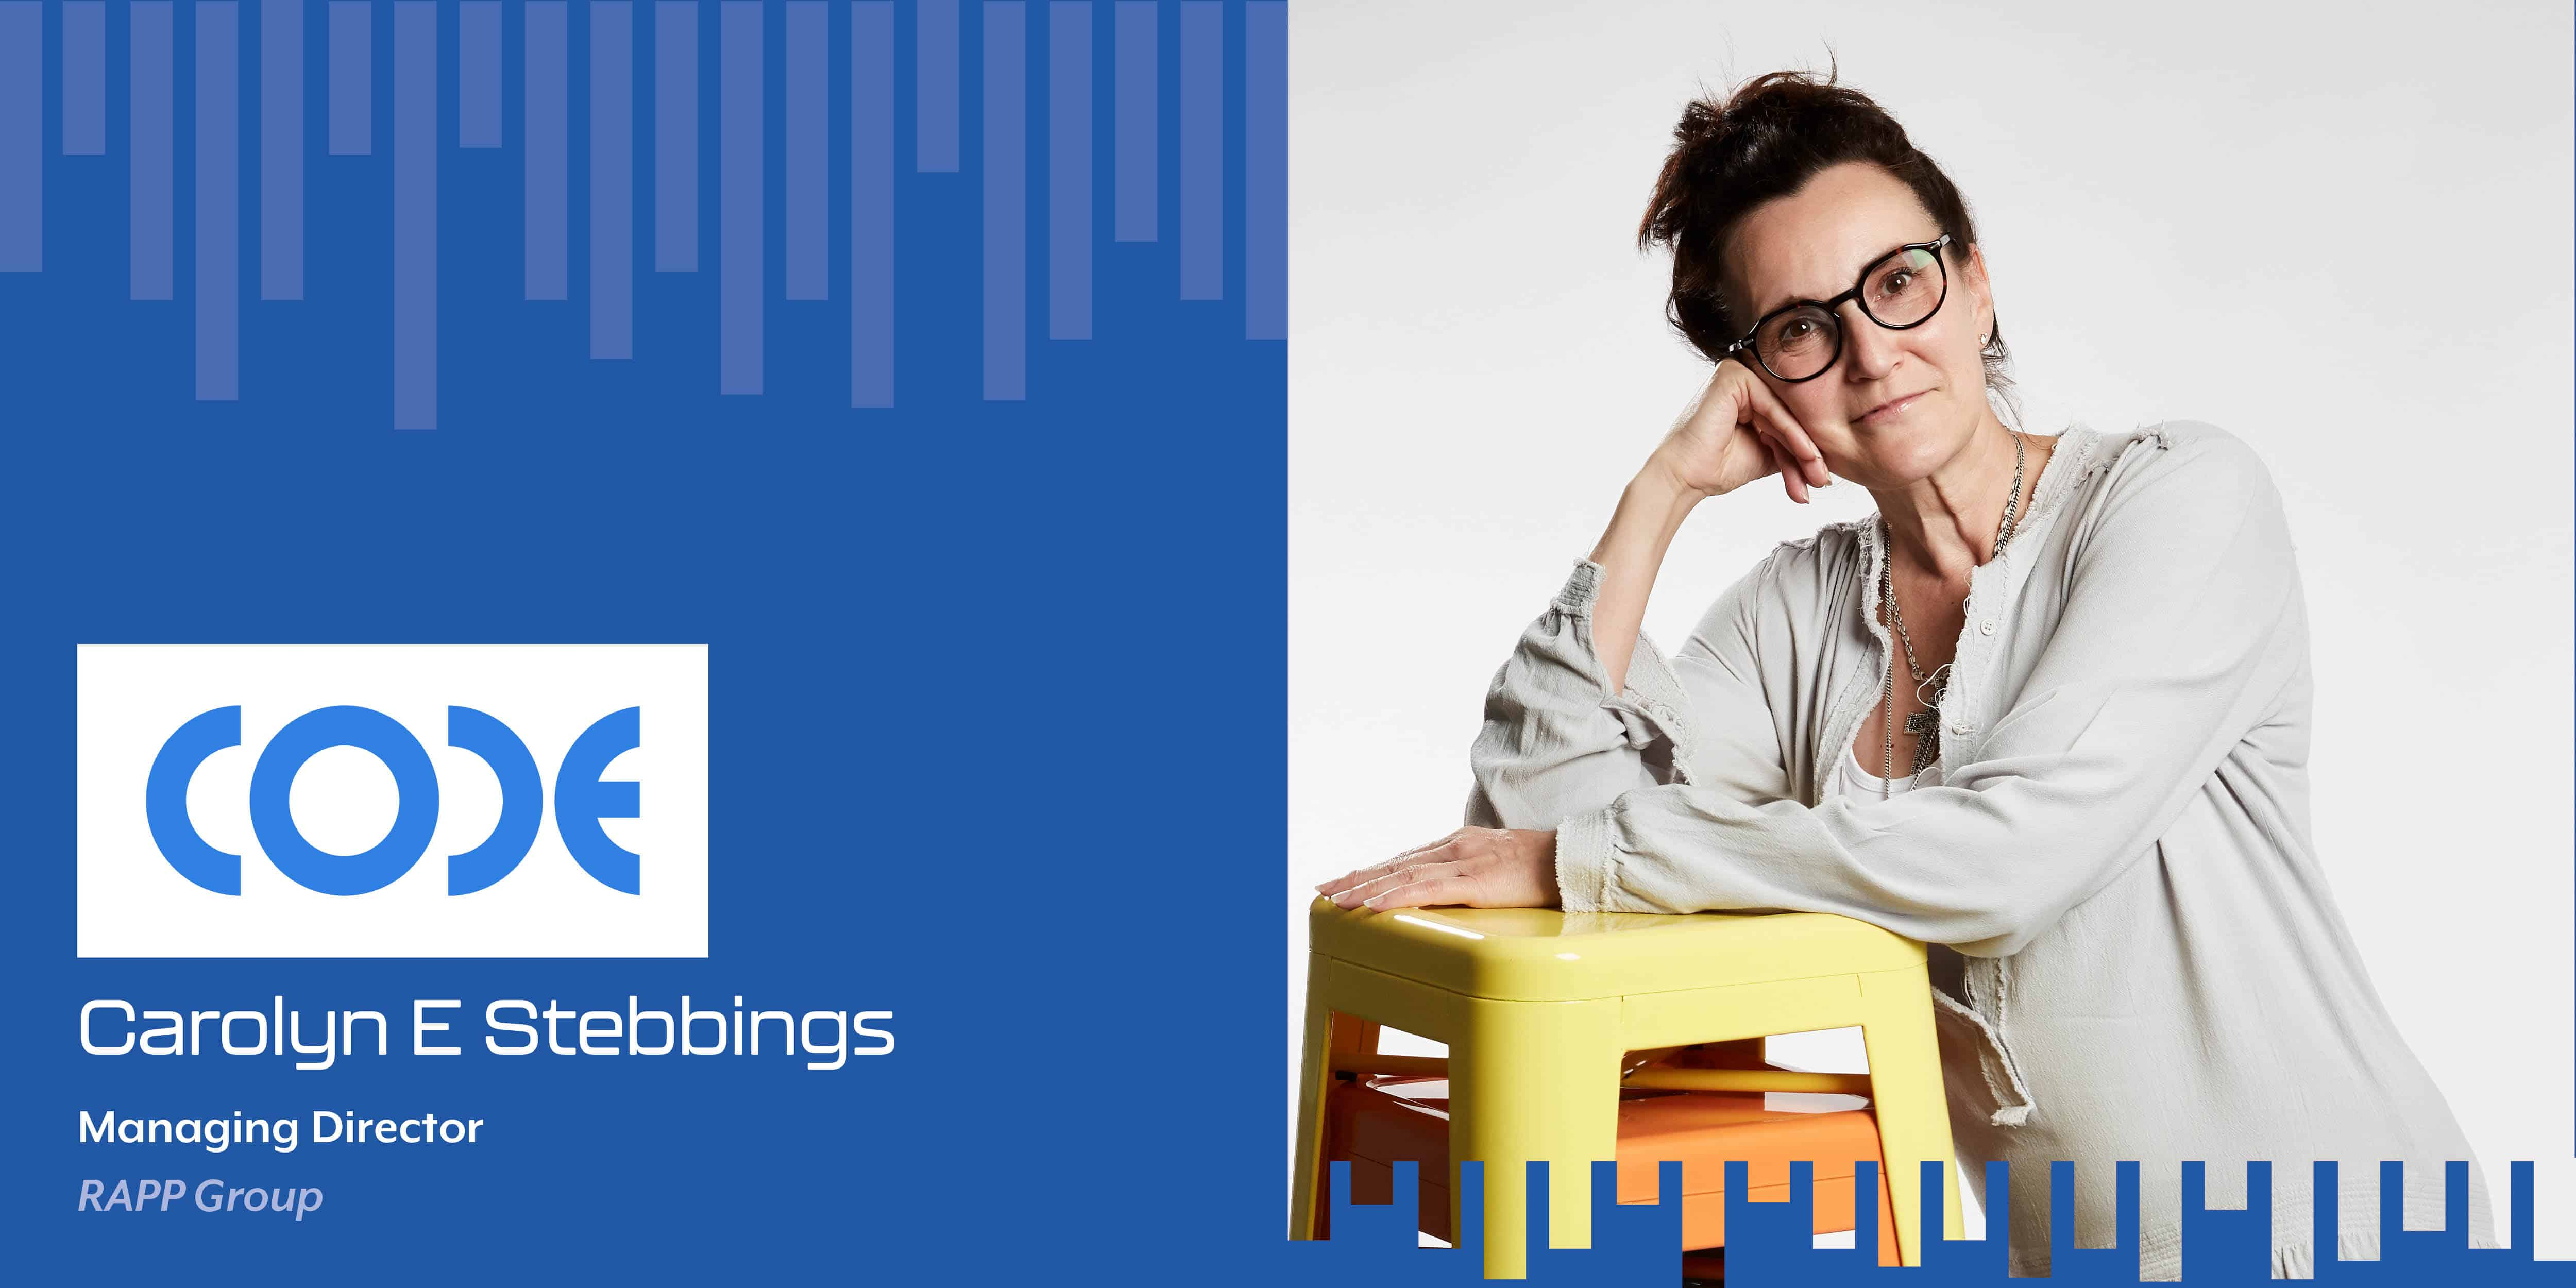 Carolyn E Stebbings: Transforming Businesses and Brands through New Age Technologies and Data